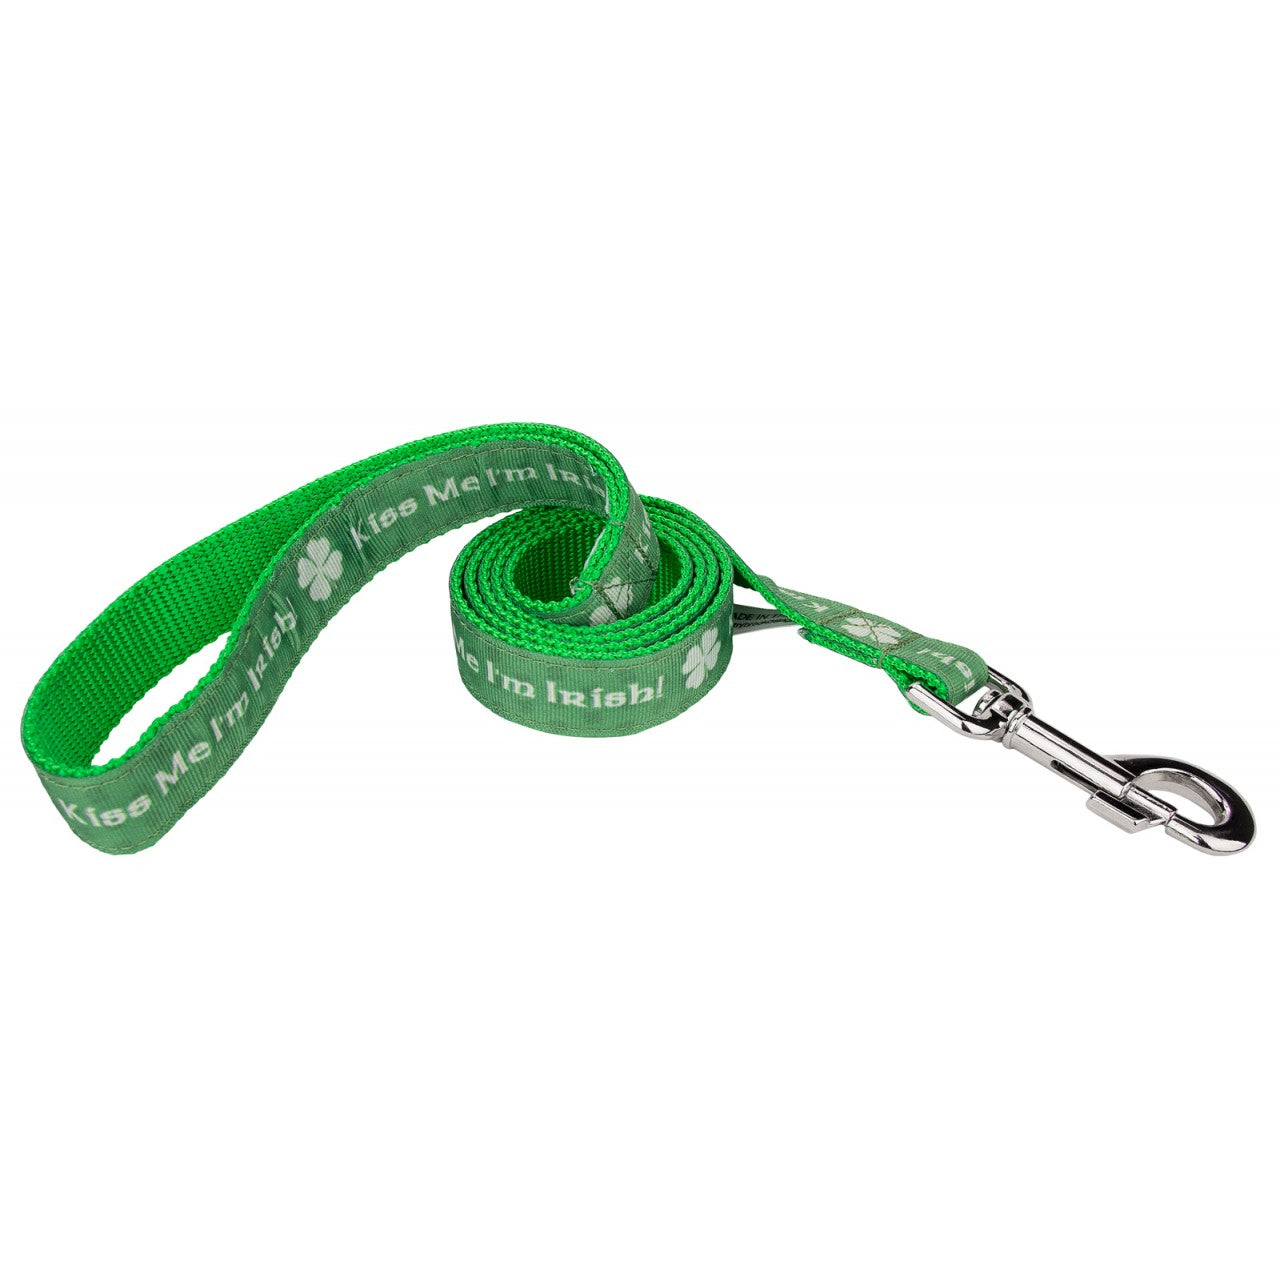 Dog Leash Saint Patrick's Day Holiday Green Medium, Large X-Large